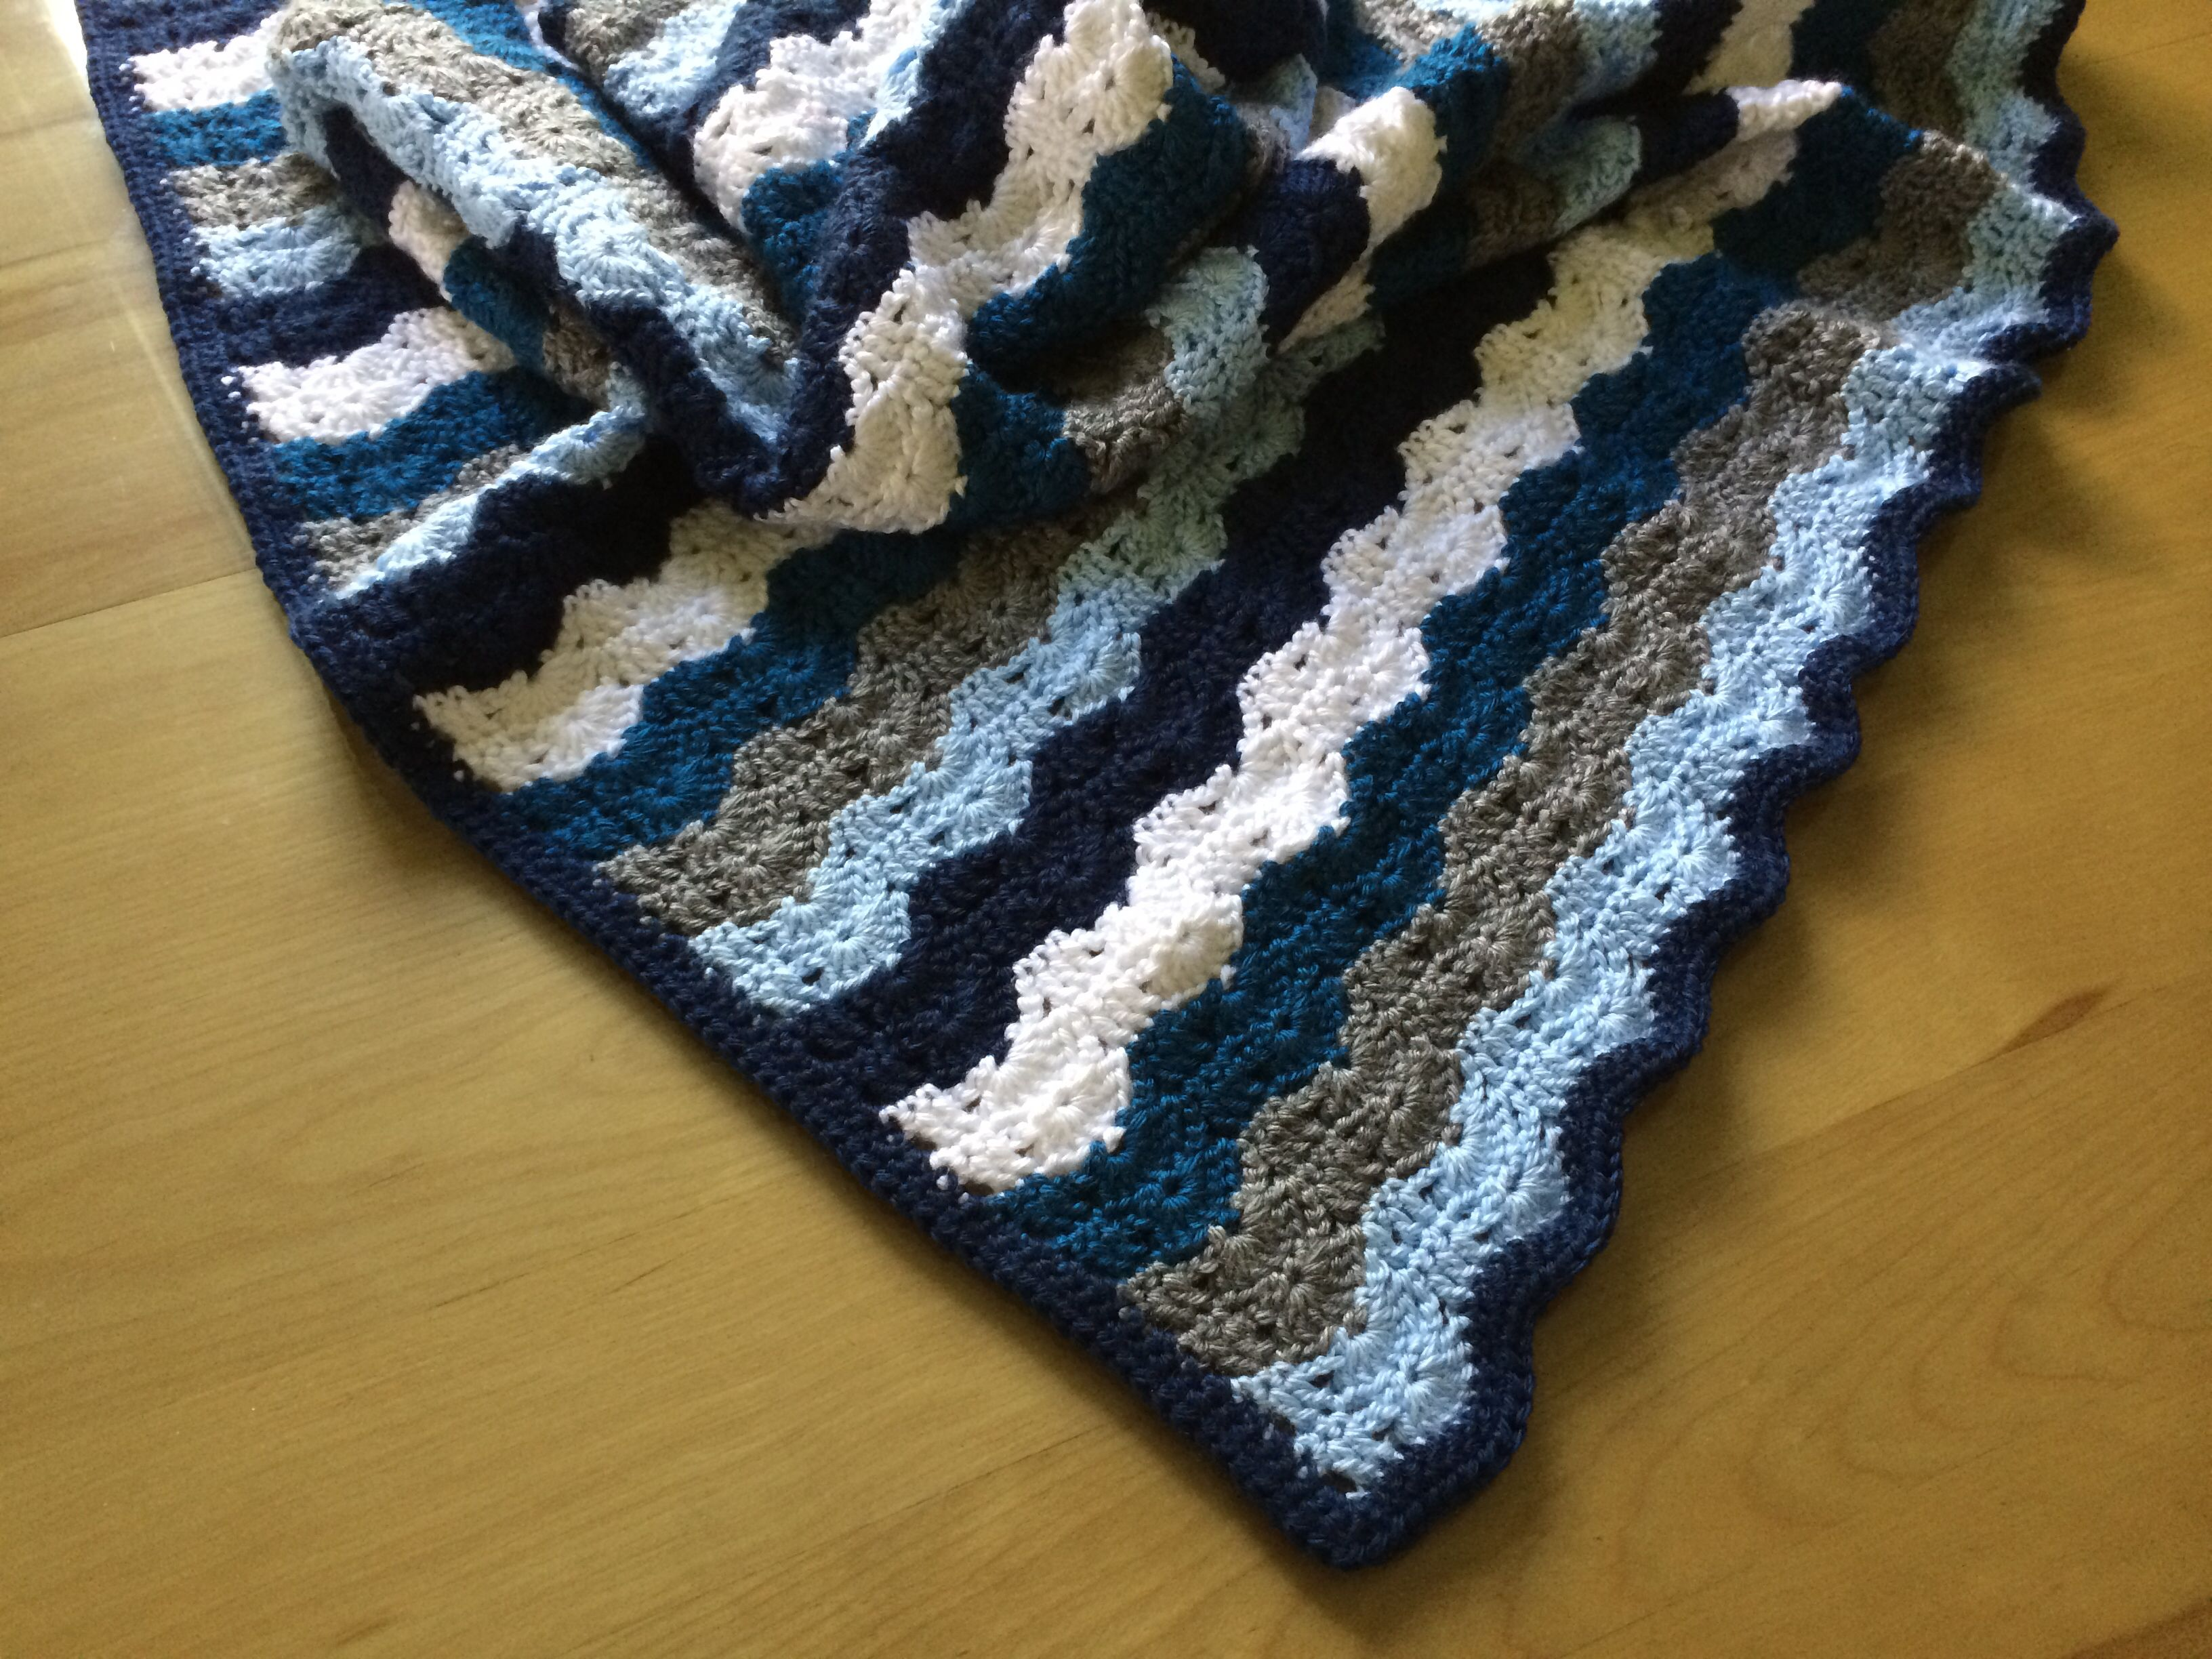 Baby boy crochet blanket in grey, light blue, navy, white, and teal ...